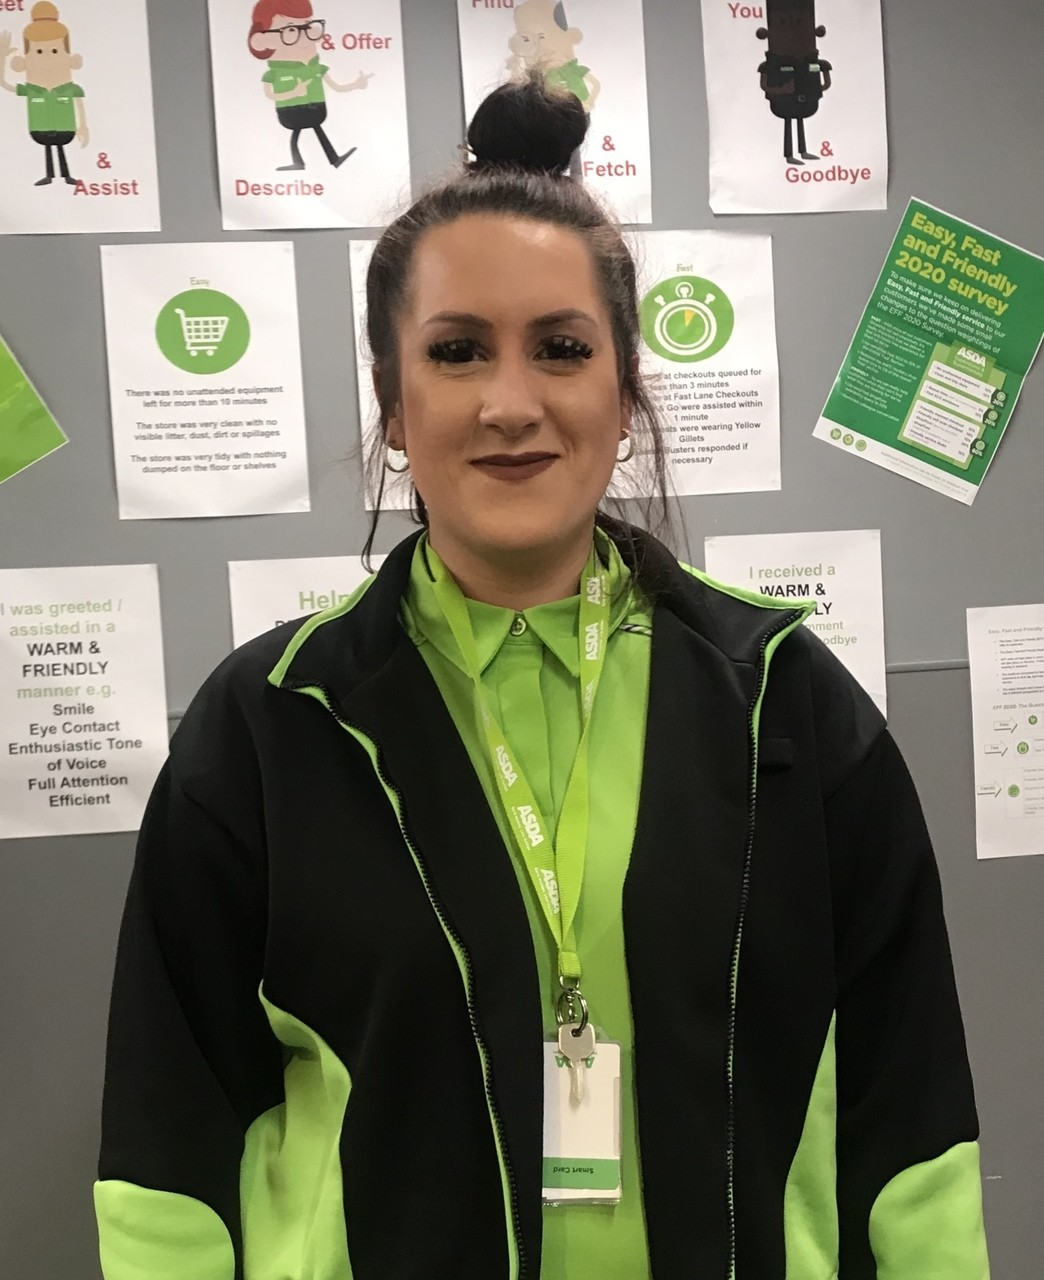 Kaybie is an Asda Frome family hero | Asda Frome